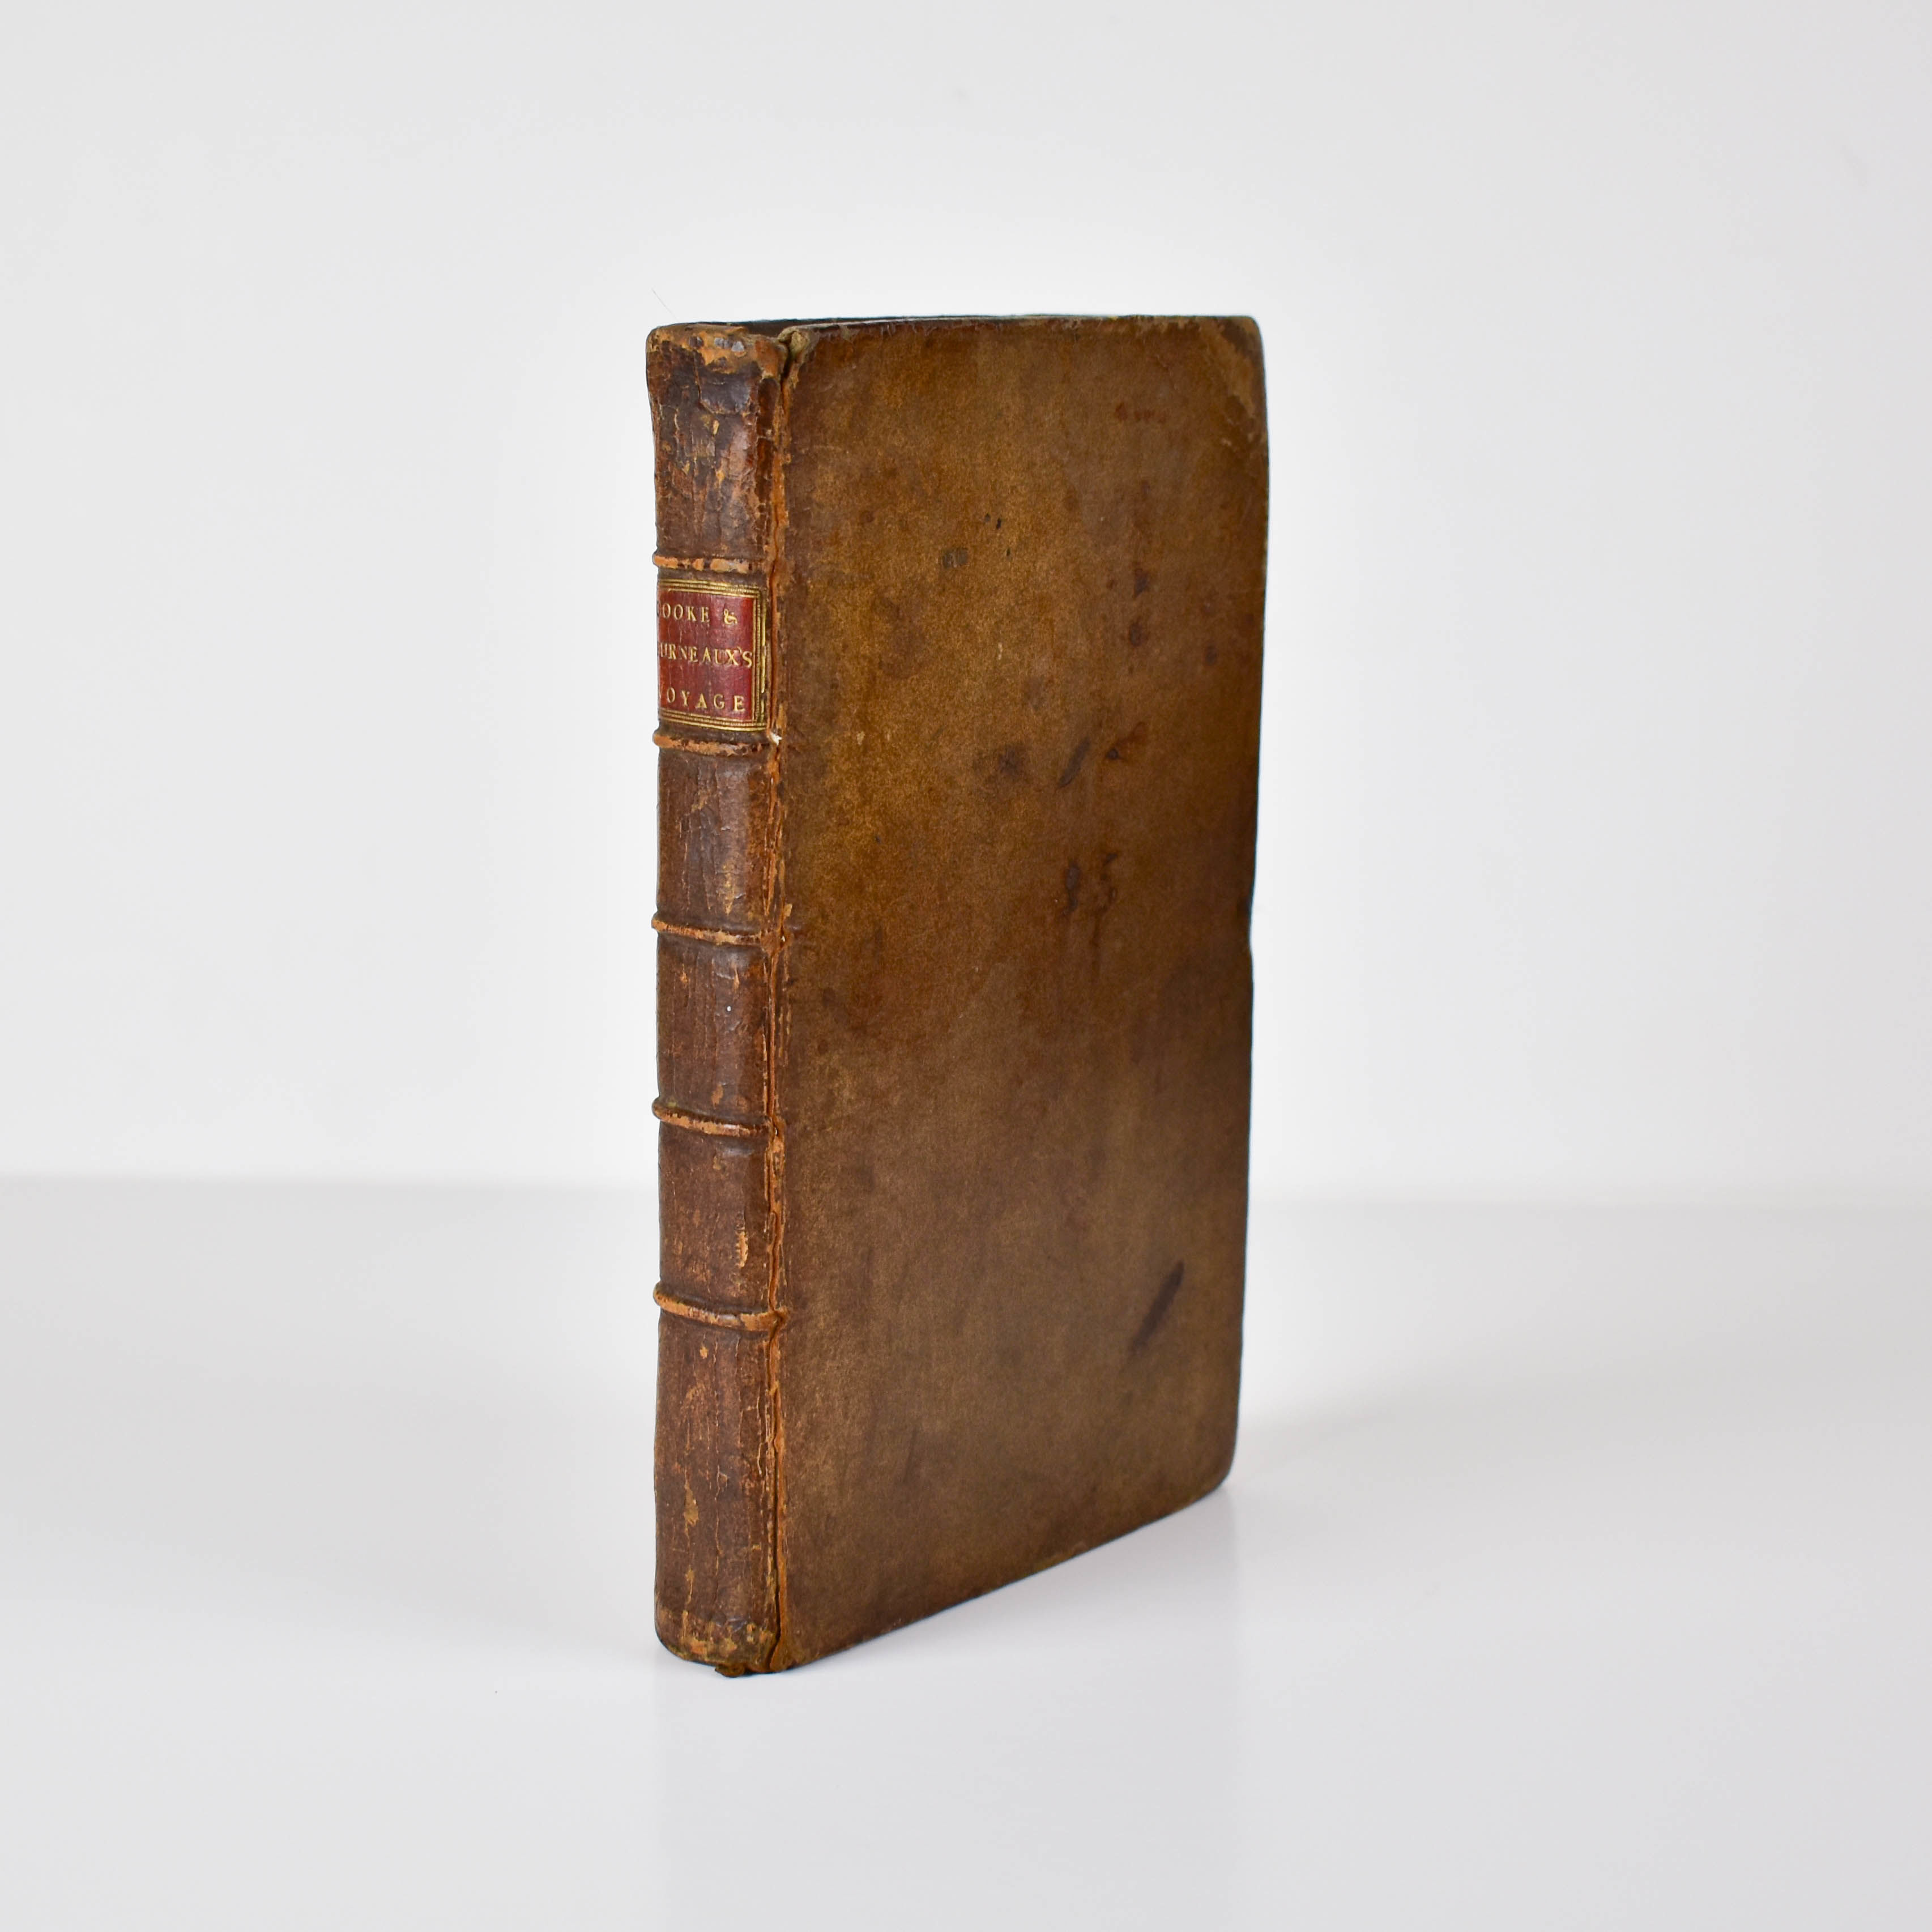 A Journal of Captain Cook's Last Voyage to the Pacific Ocean, on Discovery: Performed in the Years 1776, 1777, 1778, 1779, and 1780 Illustrated with Cuts and Charts, shewing the Tracks of the Ships employed in this expedition. (photo 4)